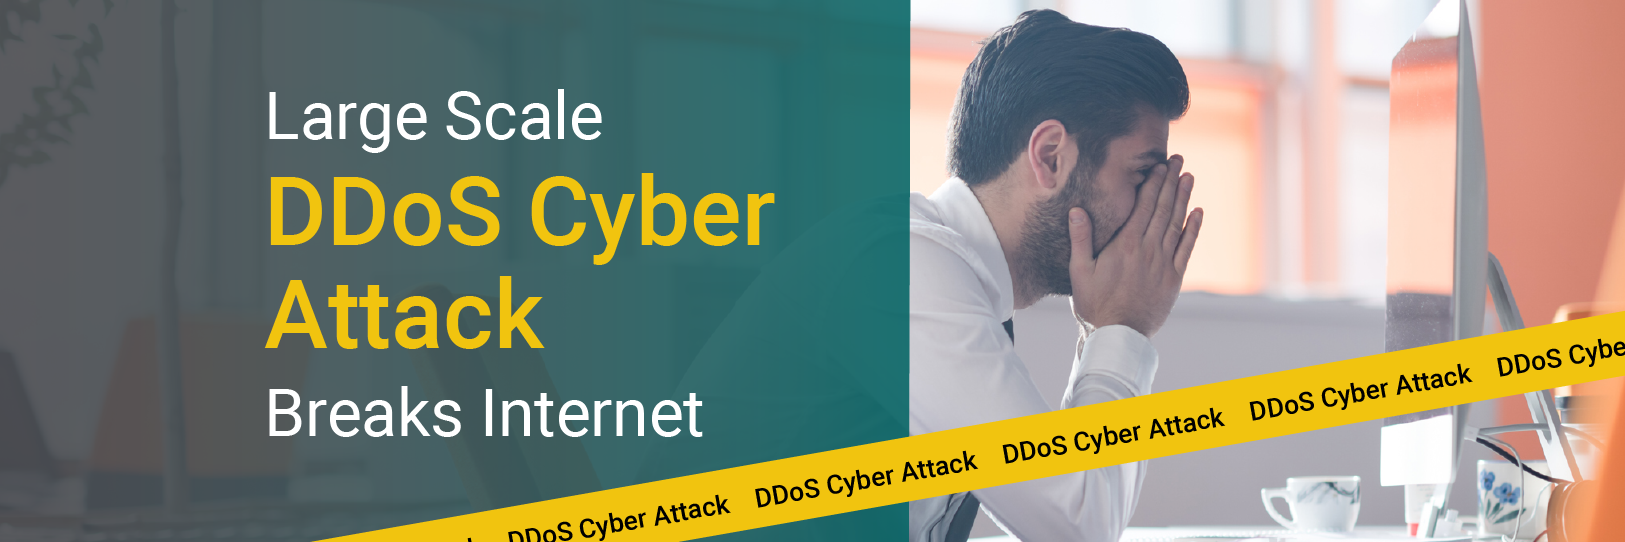 Large Scale DDoS Cyber Attack Breaks Internet